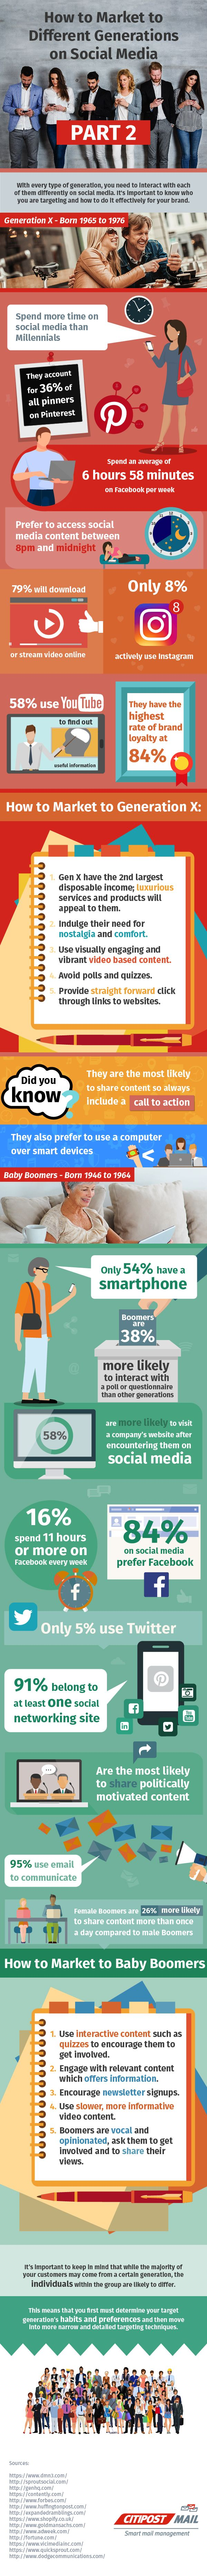 How to Market to Generation X and Baby Boomers on Social Media [Infographic] | Social Media Today